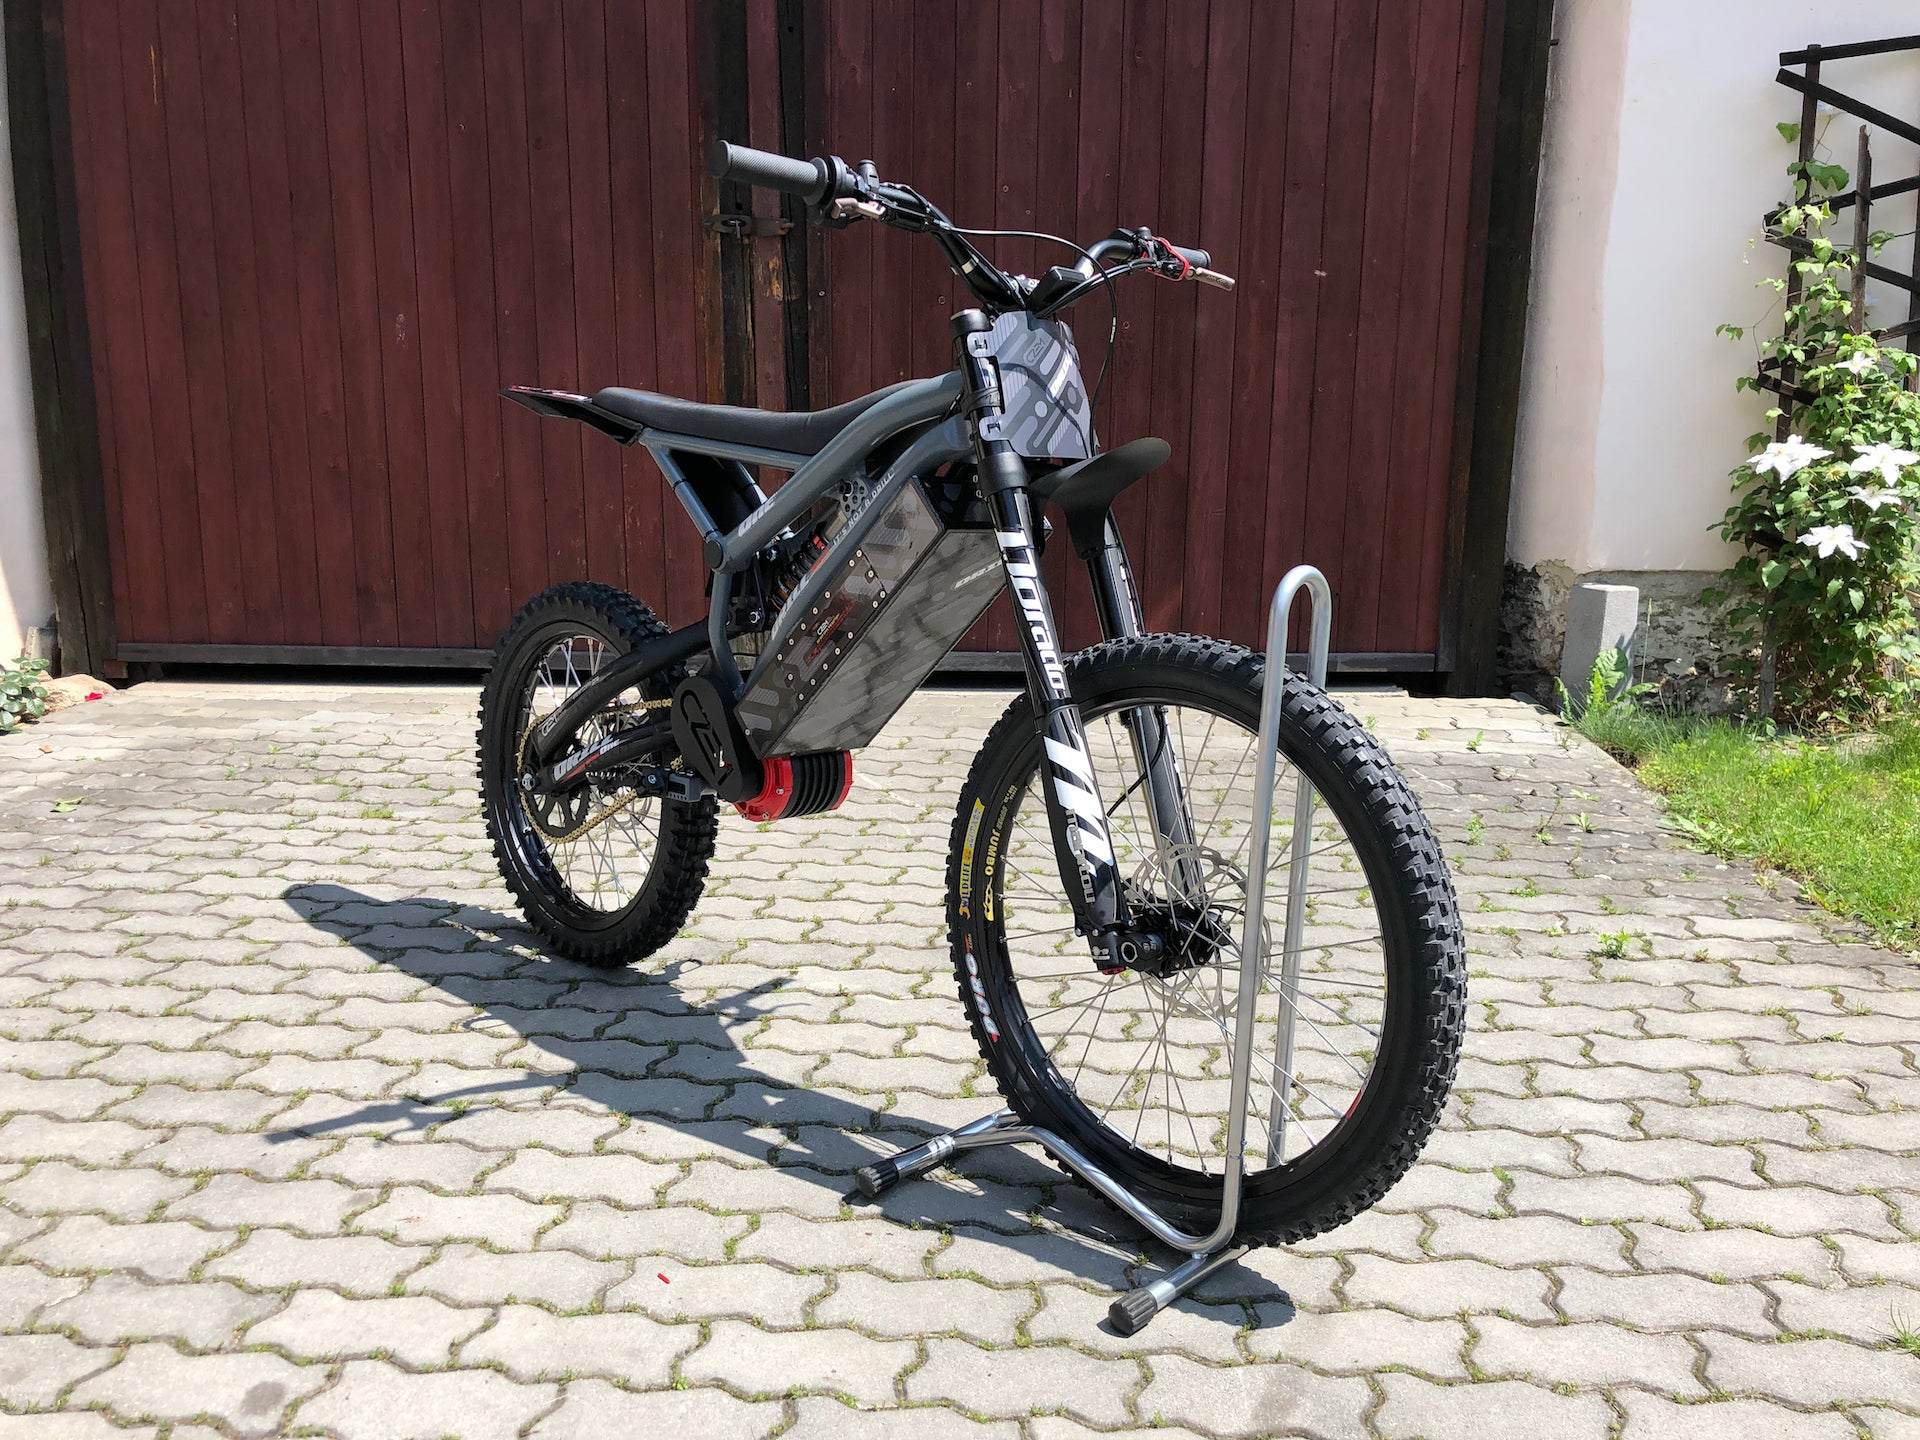 Front View Drill One Electric Dirt Bike by CzEM